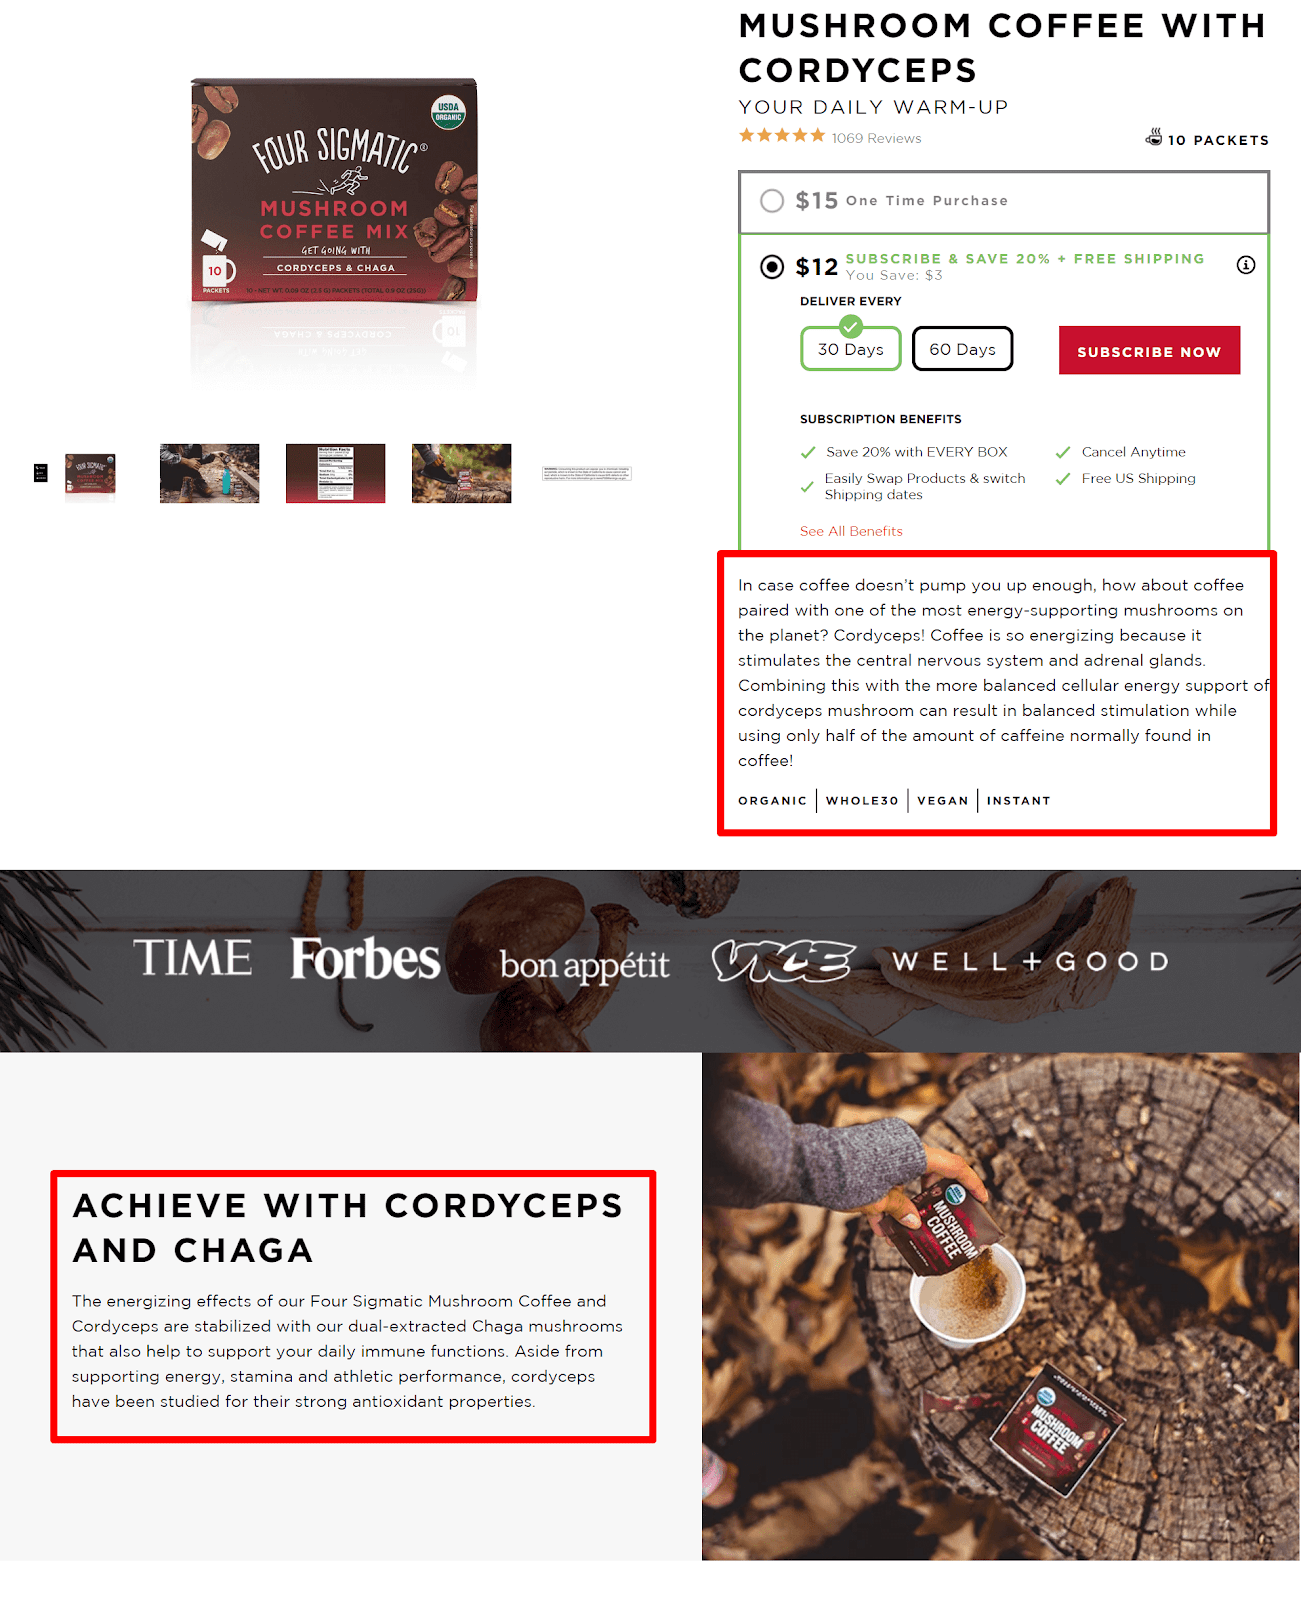 FOUR SIGMATIC product page